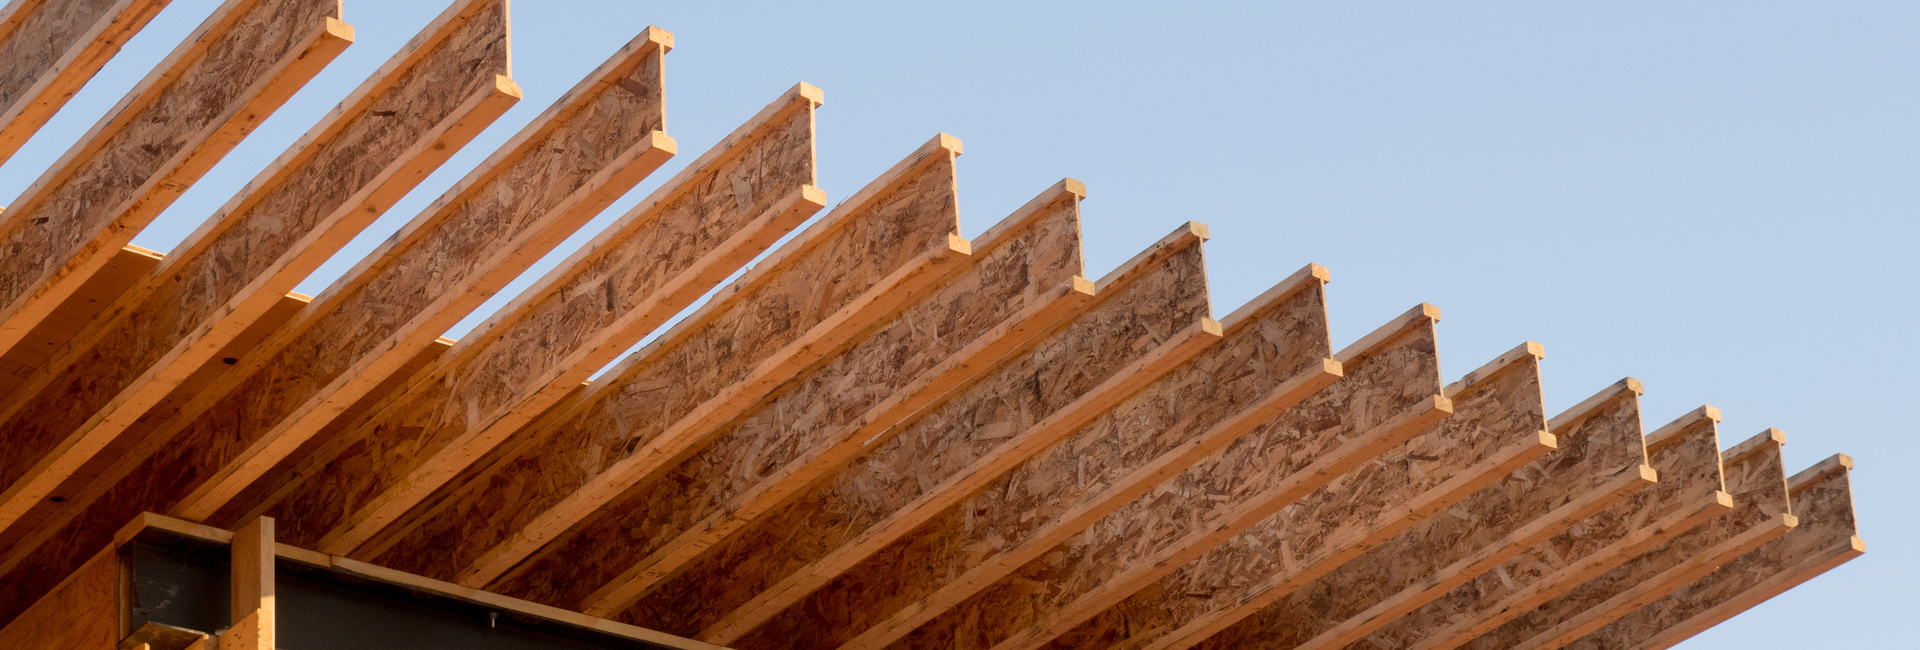 Picture for category More Completed Successful Compliance Checks with i-Joists